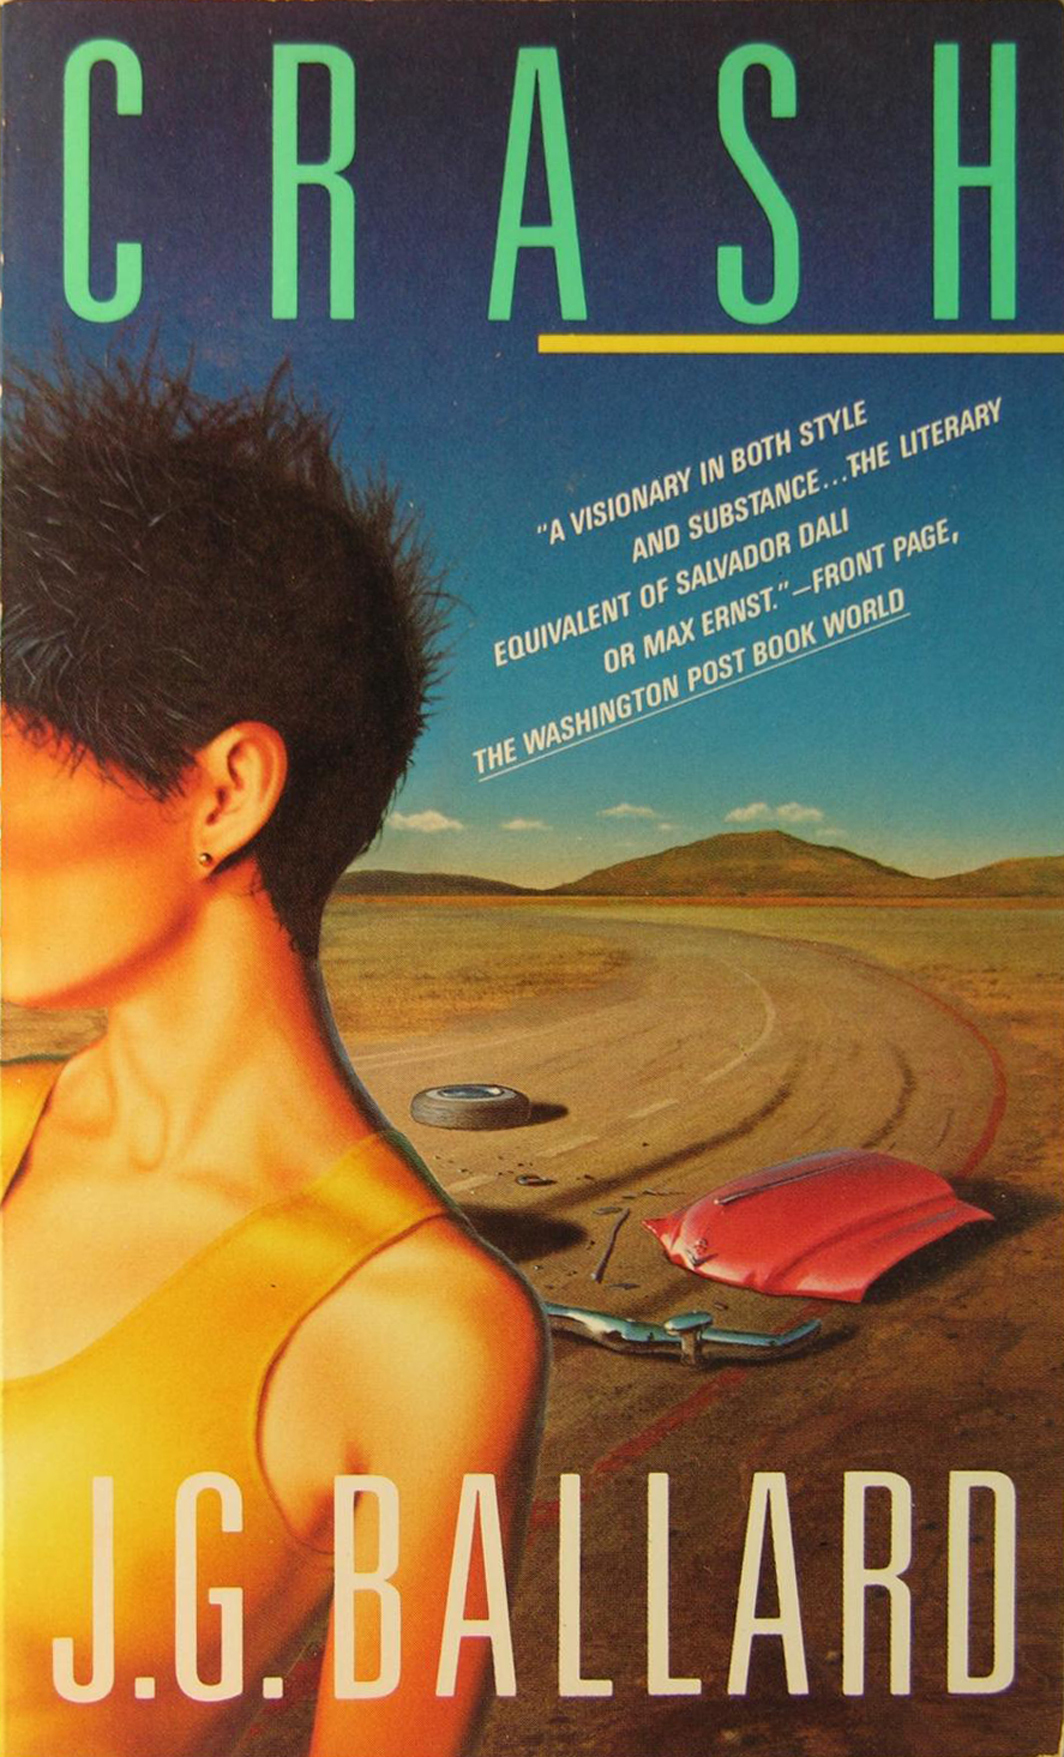 Cover of the 1985 edition of J.G. Ballard's 1973 Crash (Vintage Books, 1985).